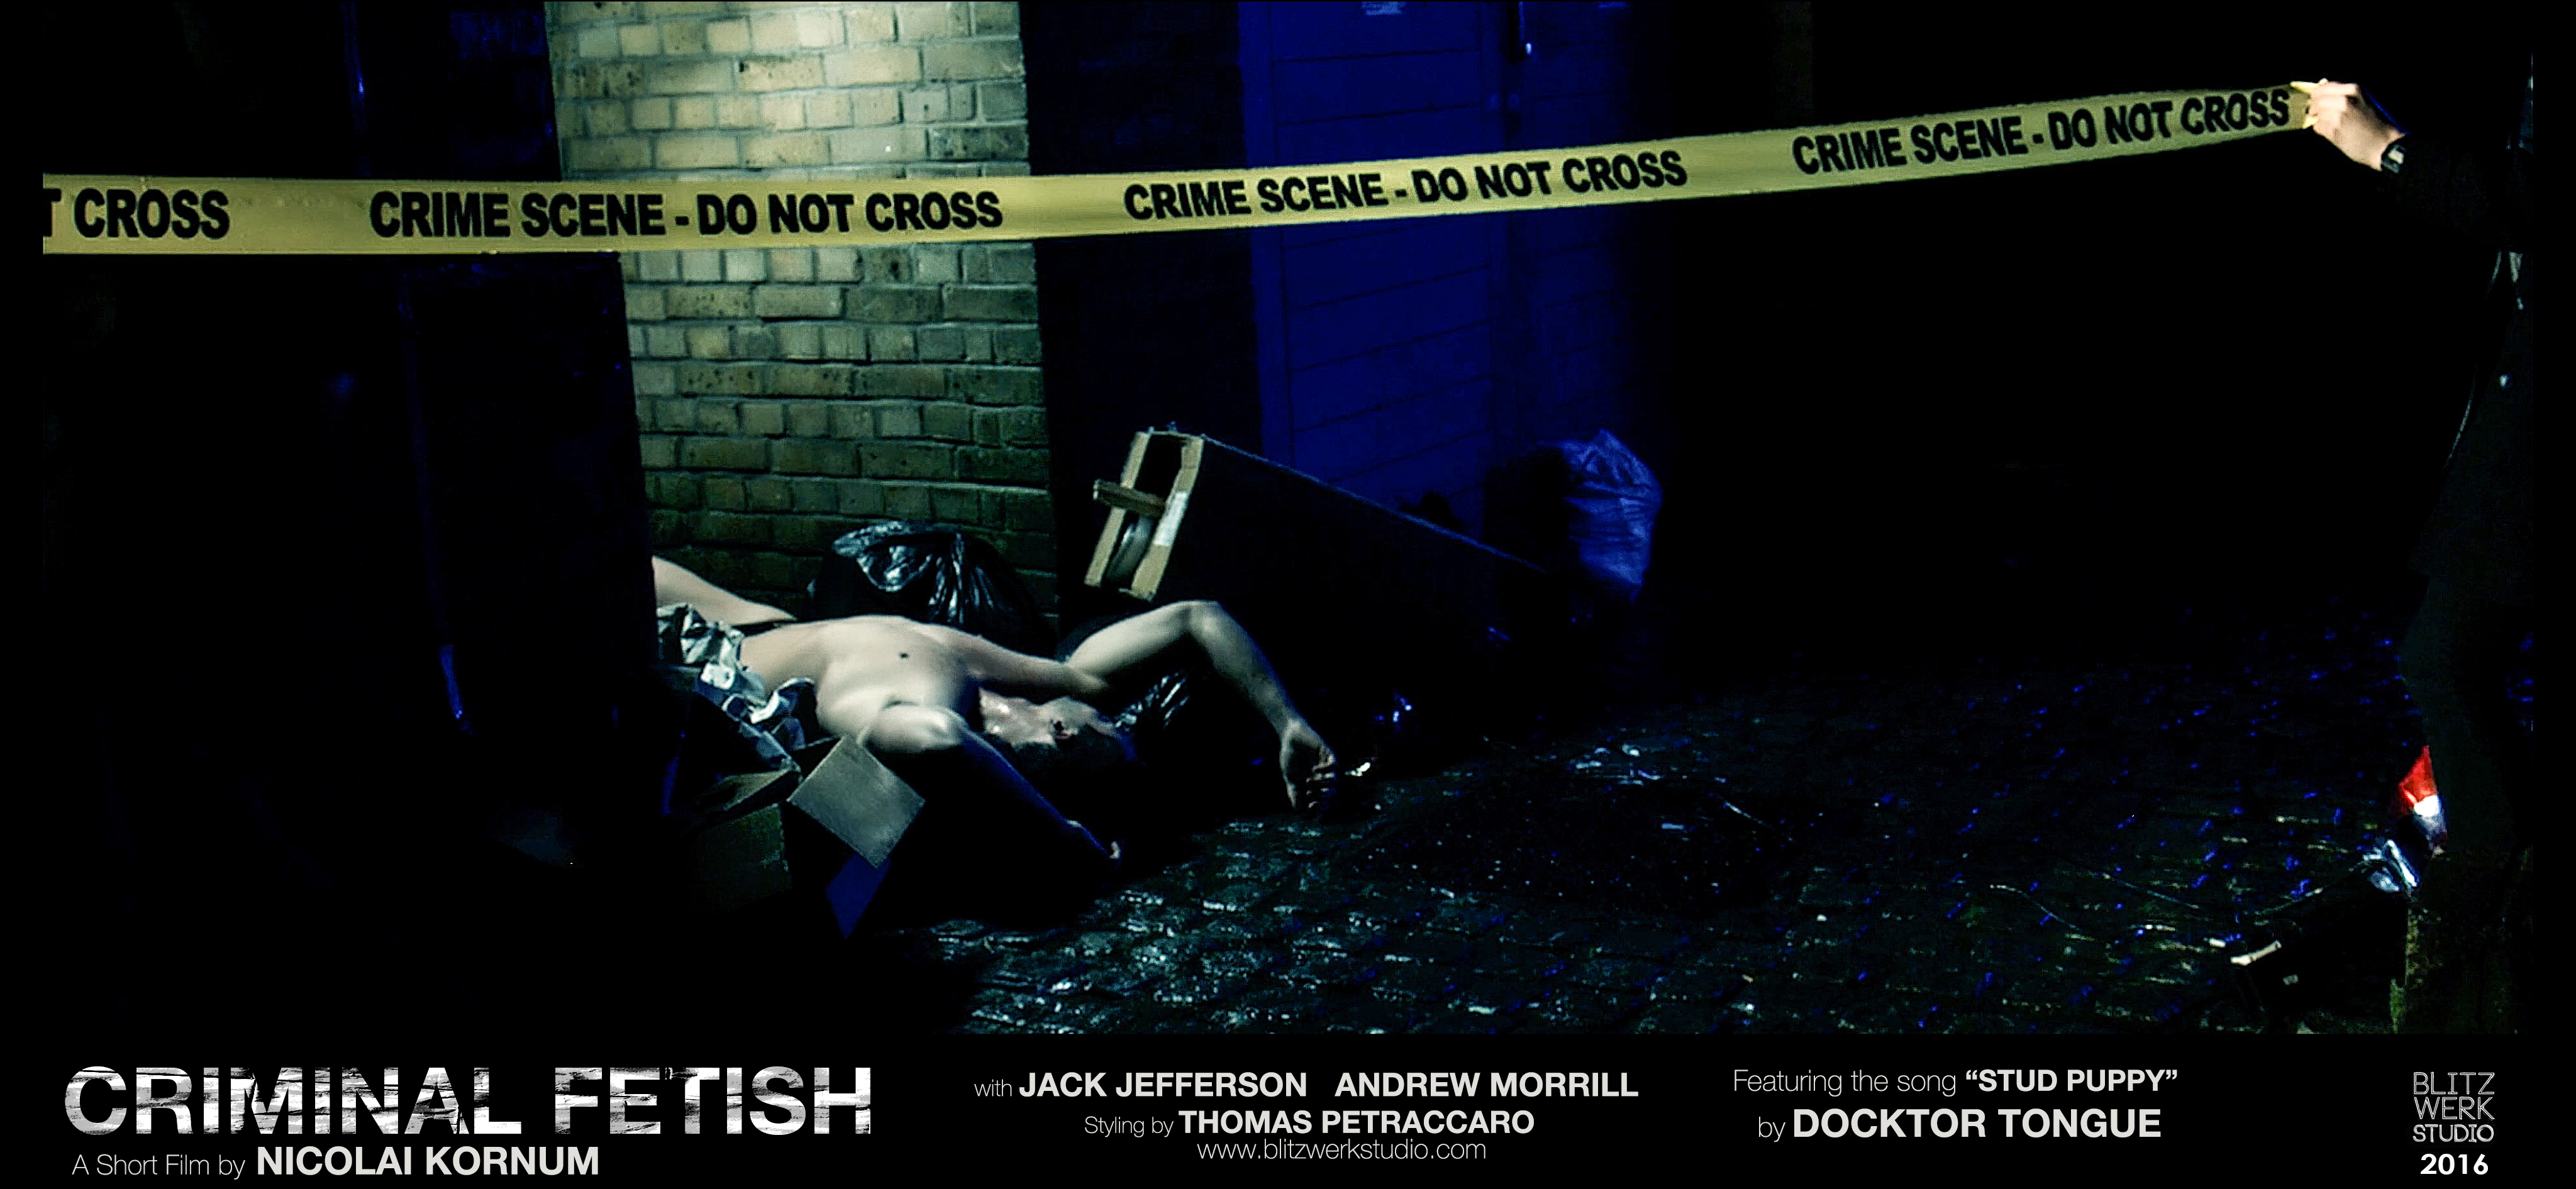 CRIMINAL FETISH Prod Still (5)